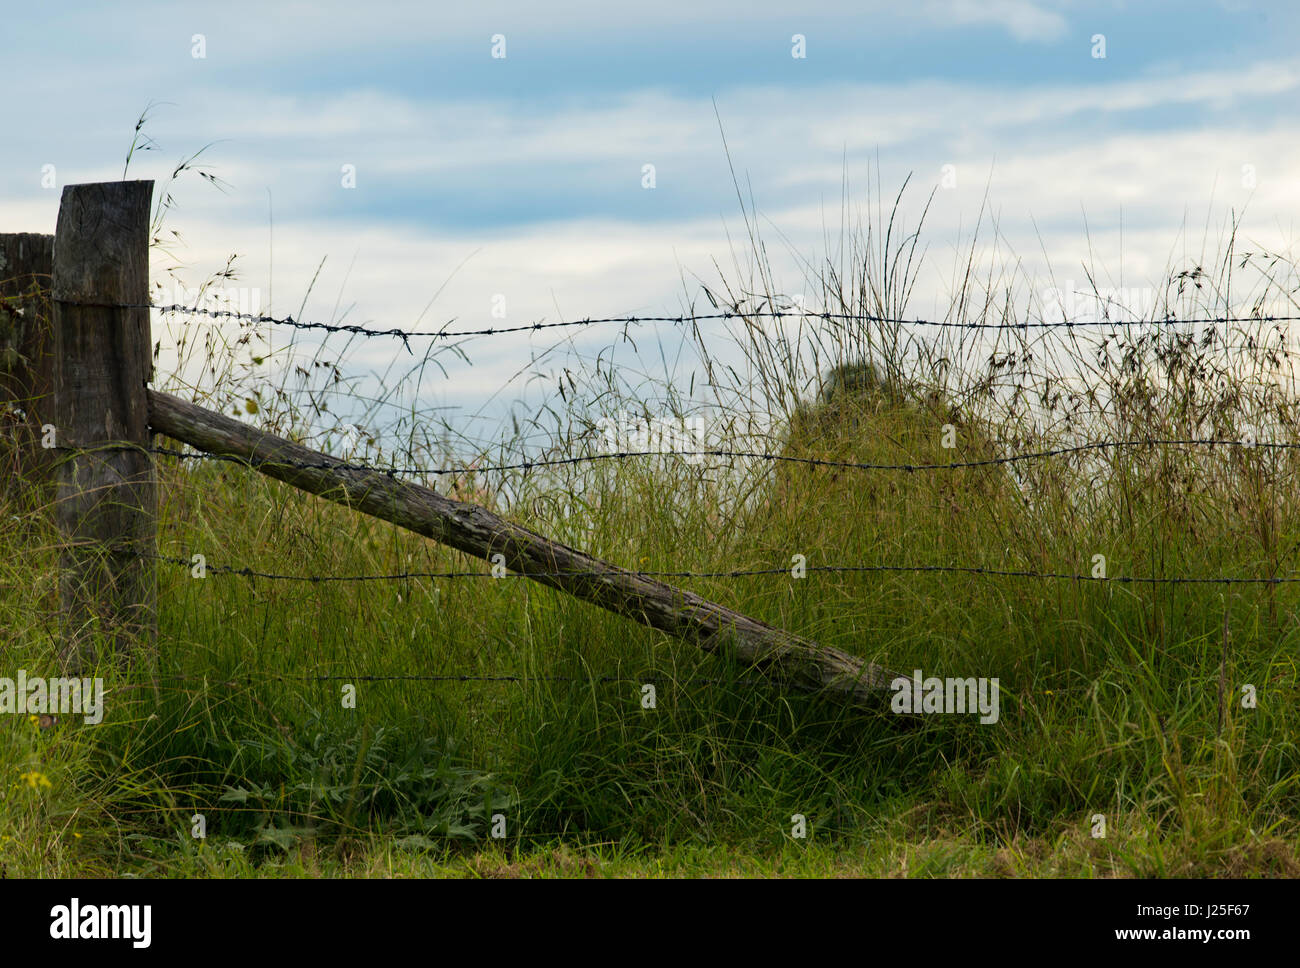 Old and rusting barbed wire fencing with eucalyptus (gum tree) hardwood fence posts on a farm property in New South - Stock Image